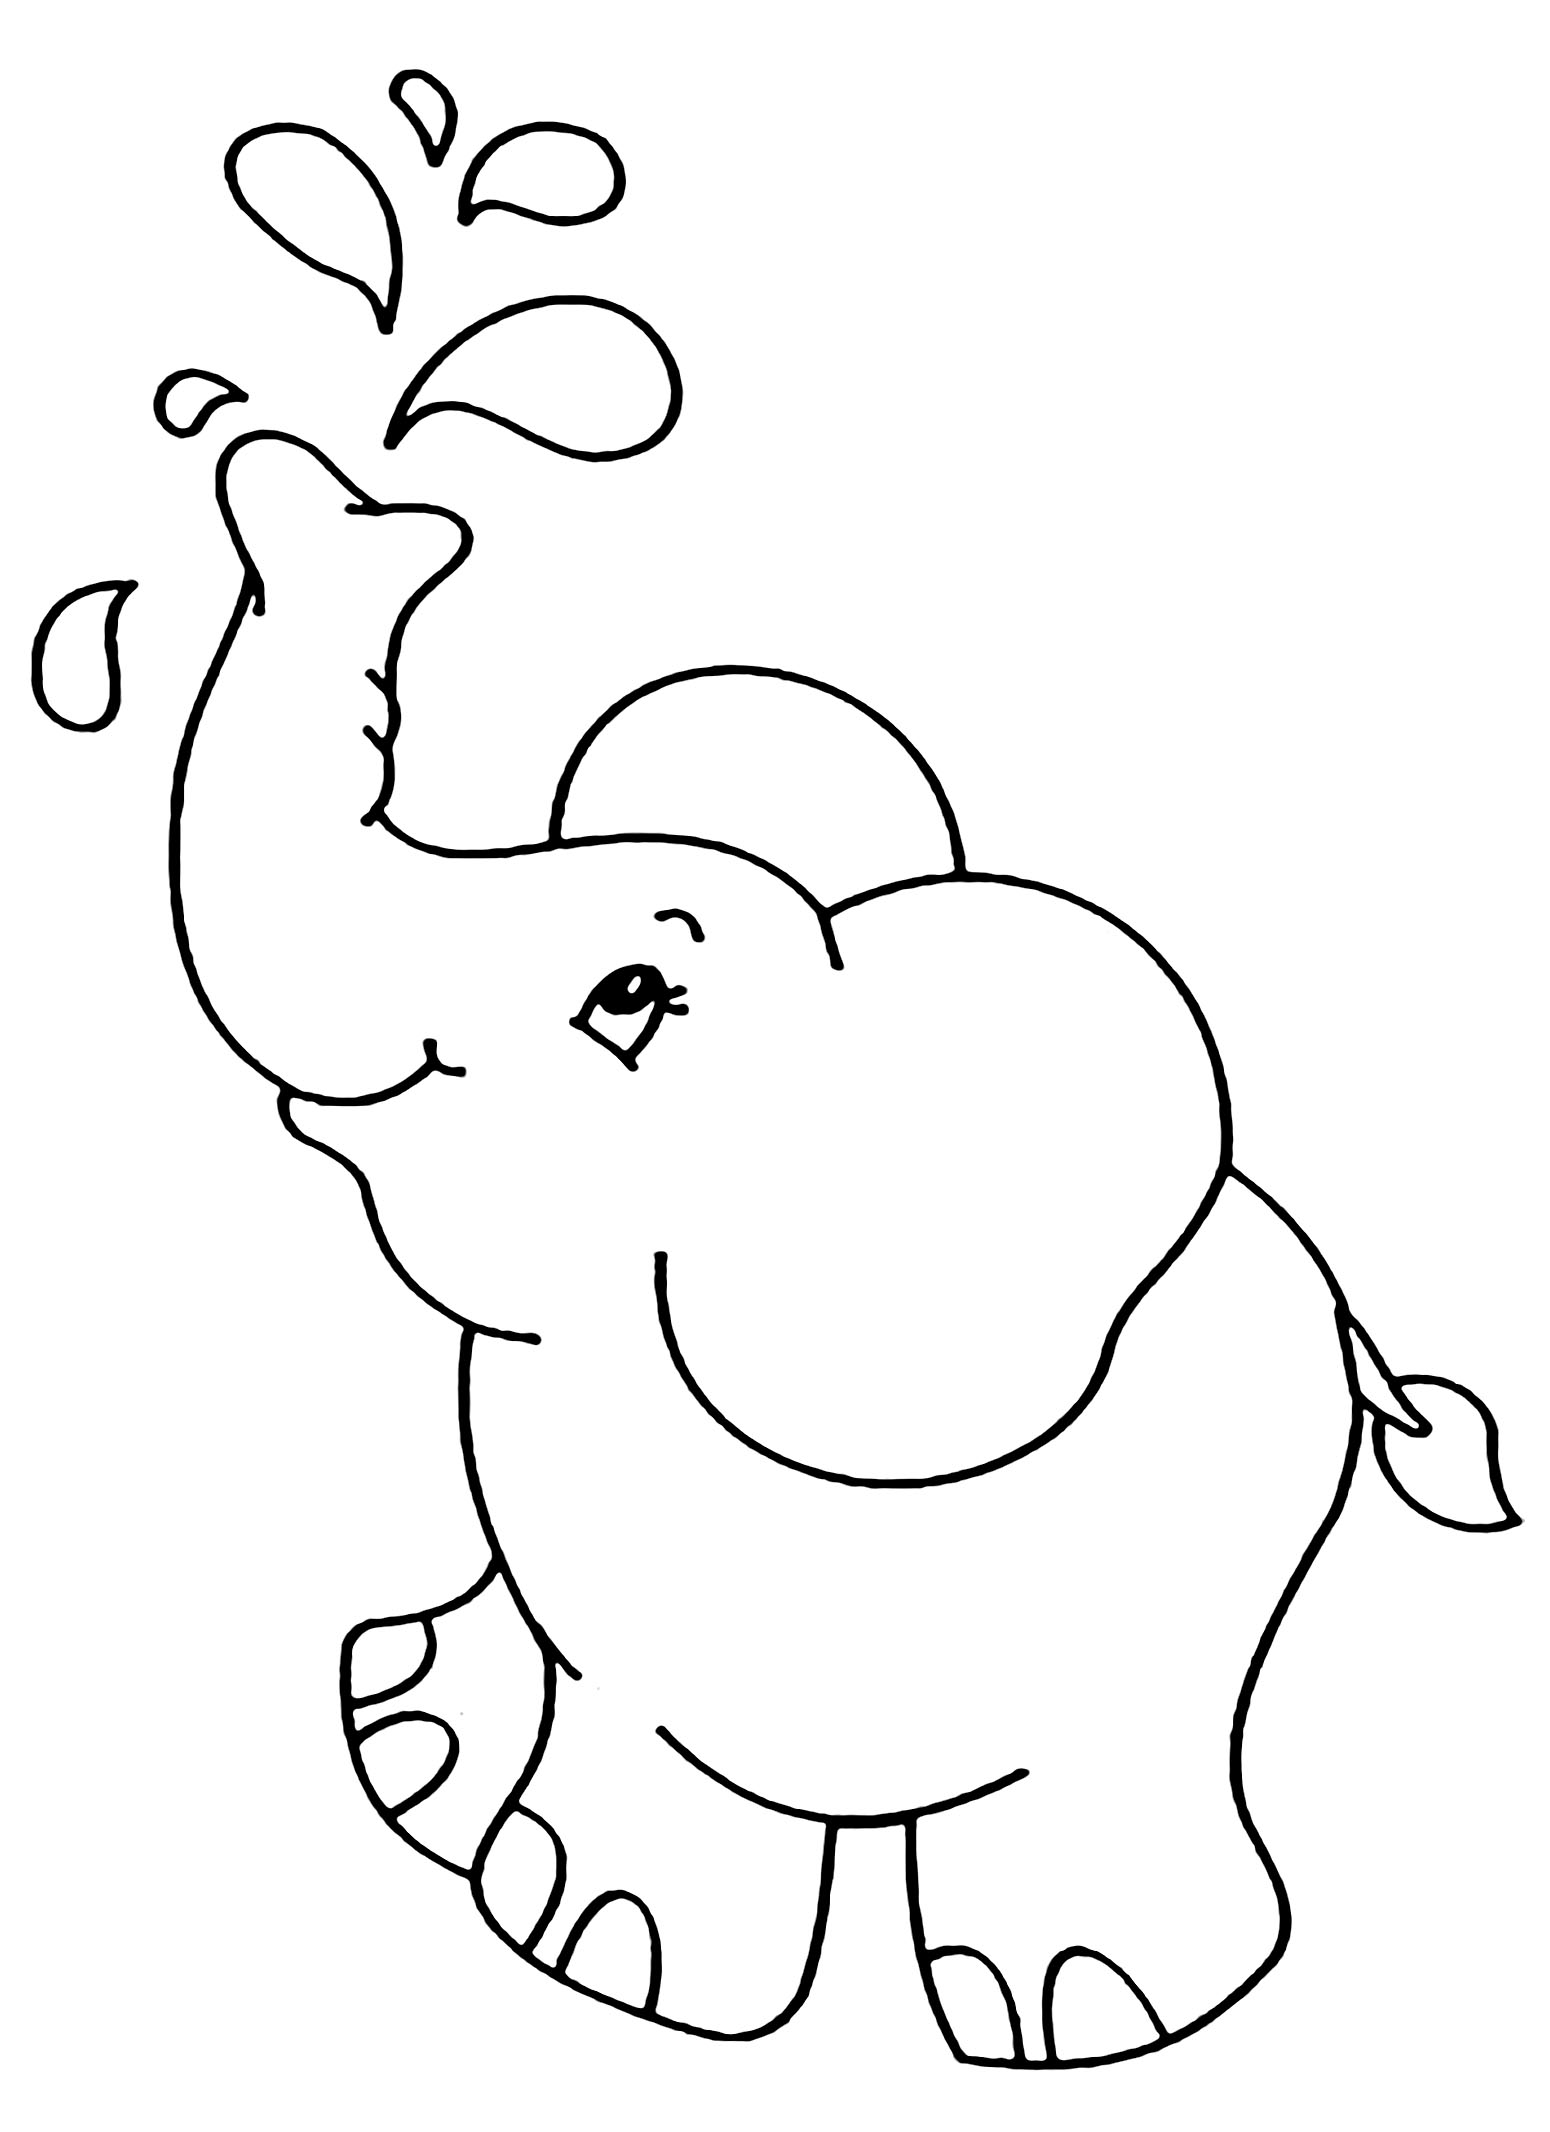 colouring pictures of elephant elephants free to color for kids elephants kids coloring elephant colouring pictures of